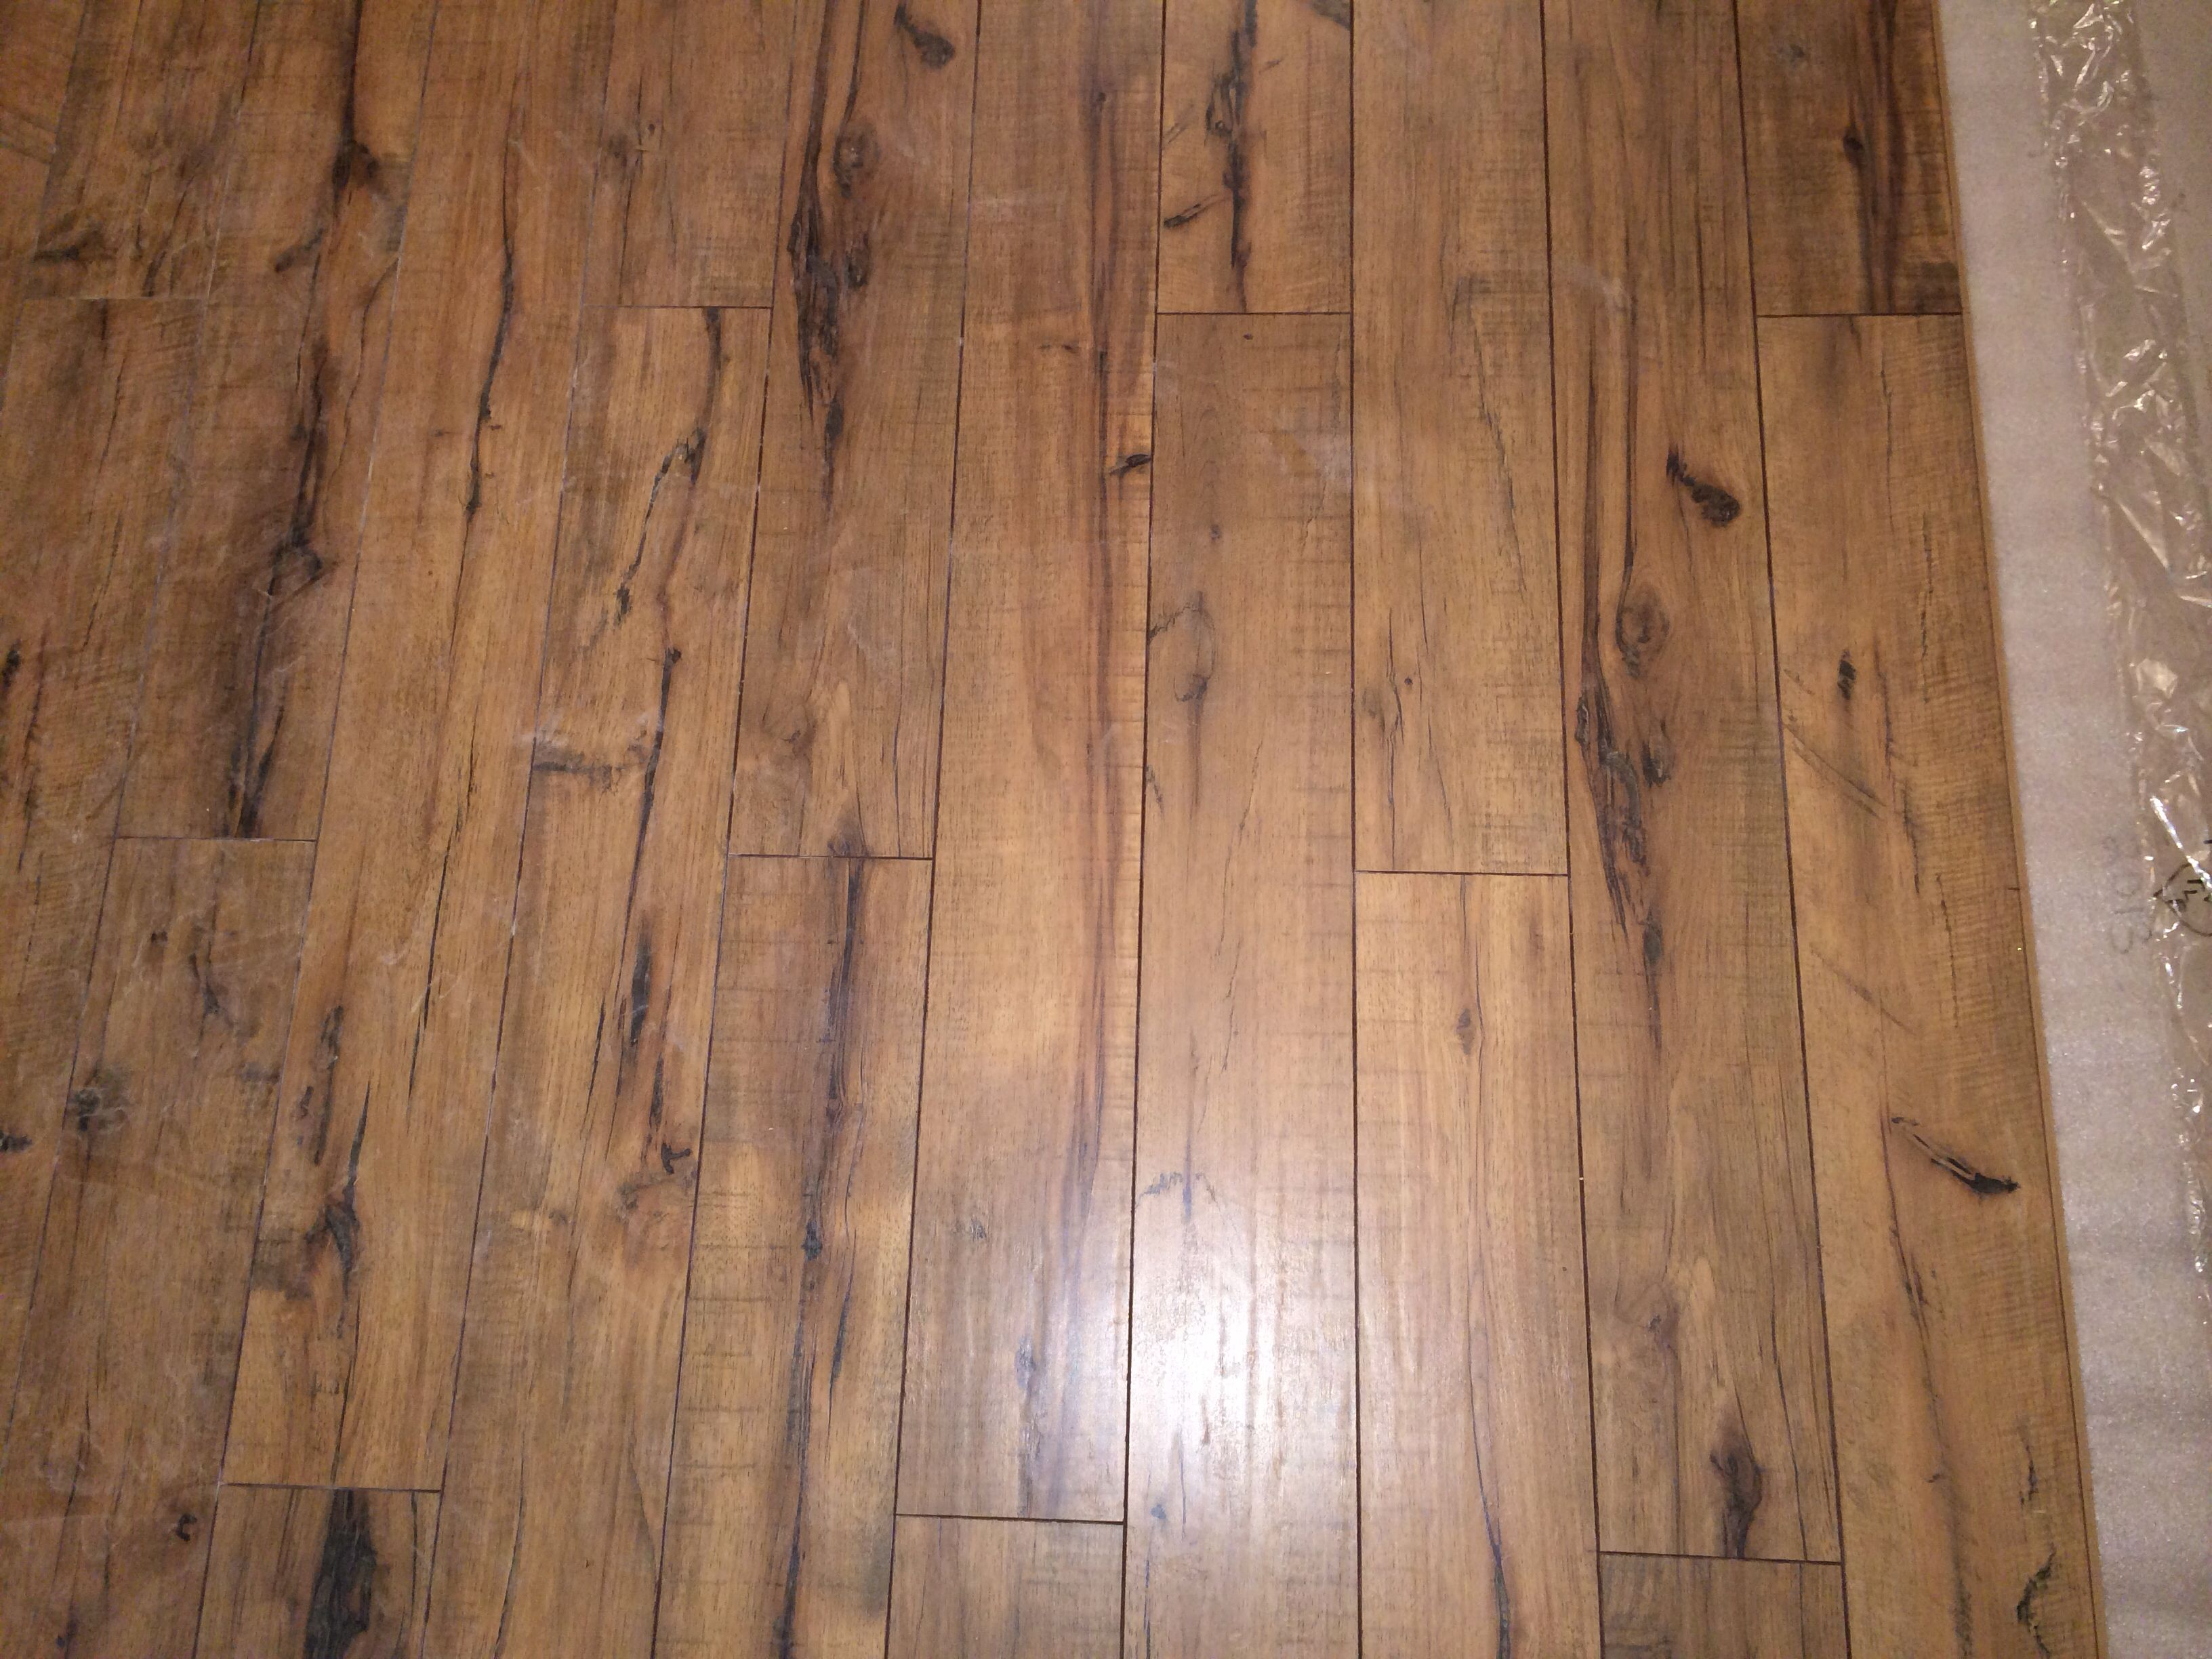 Pin By Emily Nunley On My House Flooring Laminate Flooring Laminate Wood Flooring Colors